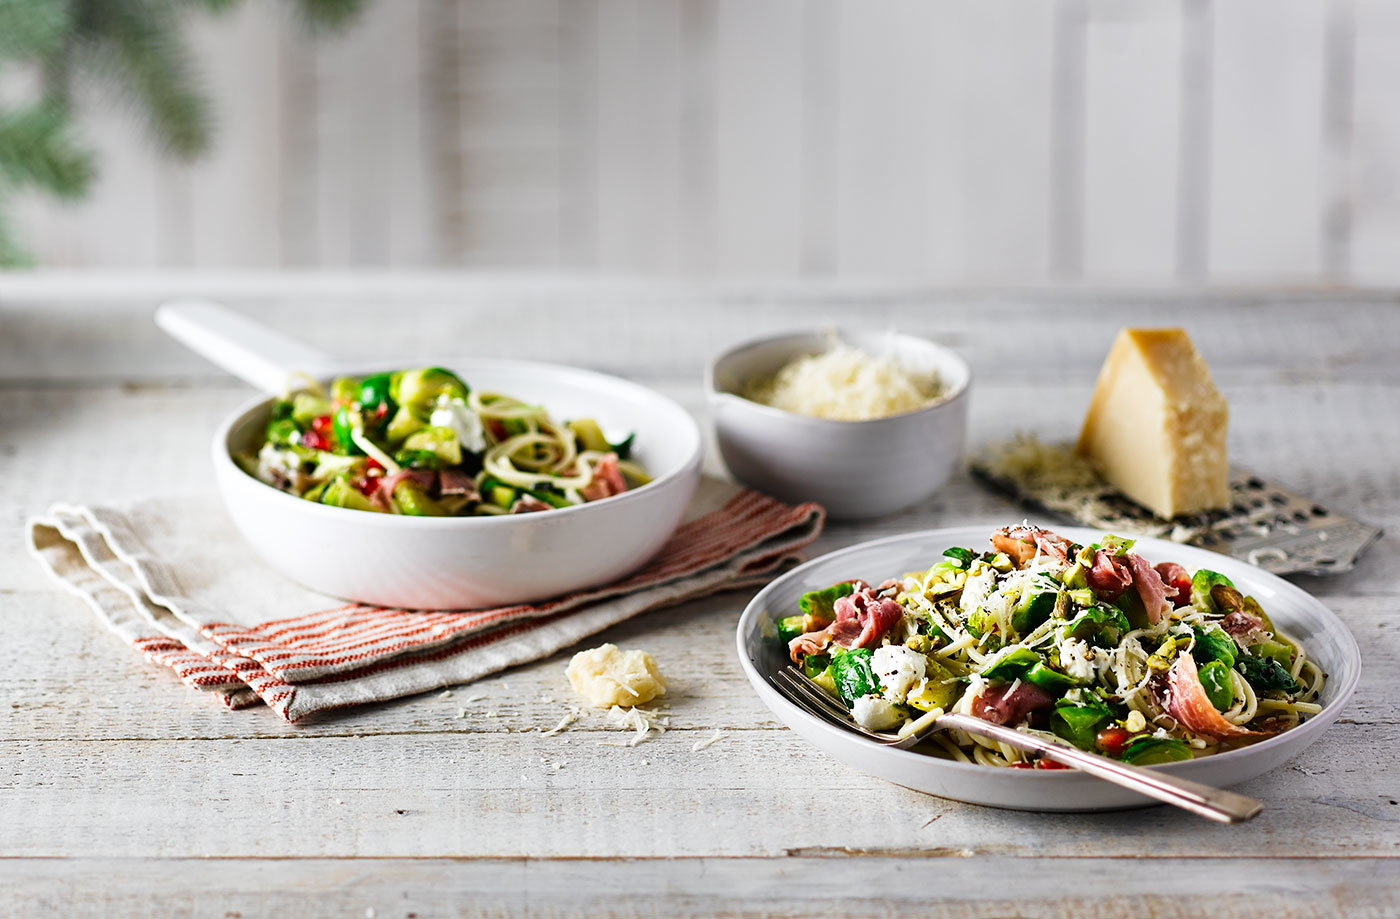 Sprout and prosciutto spaghetti with pistachios recipe